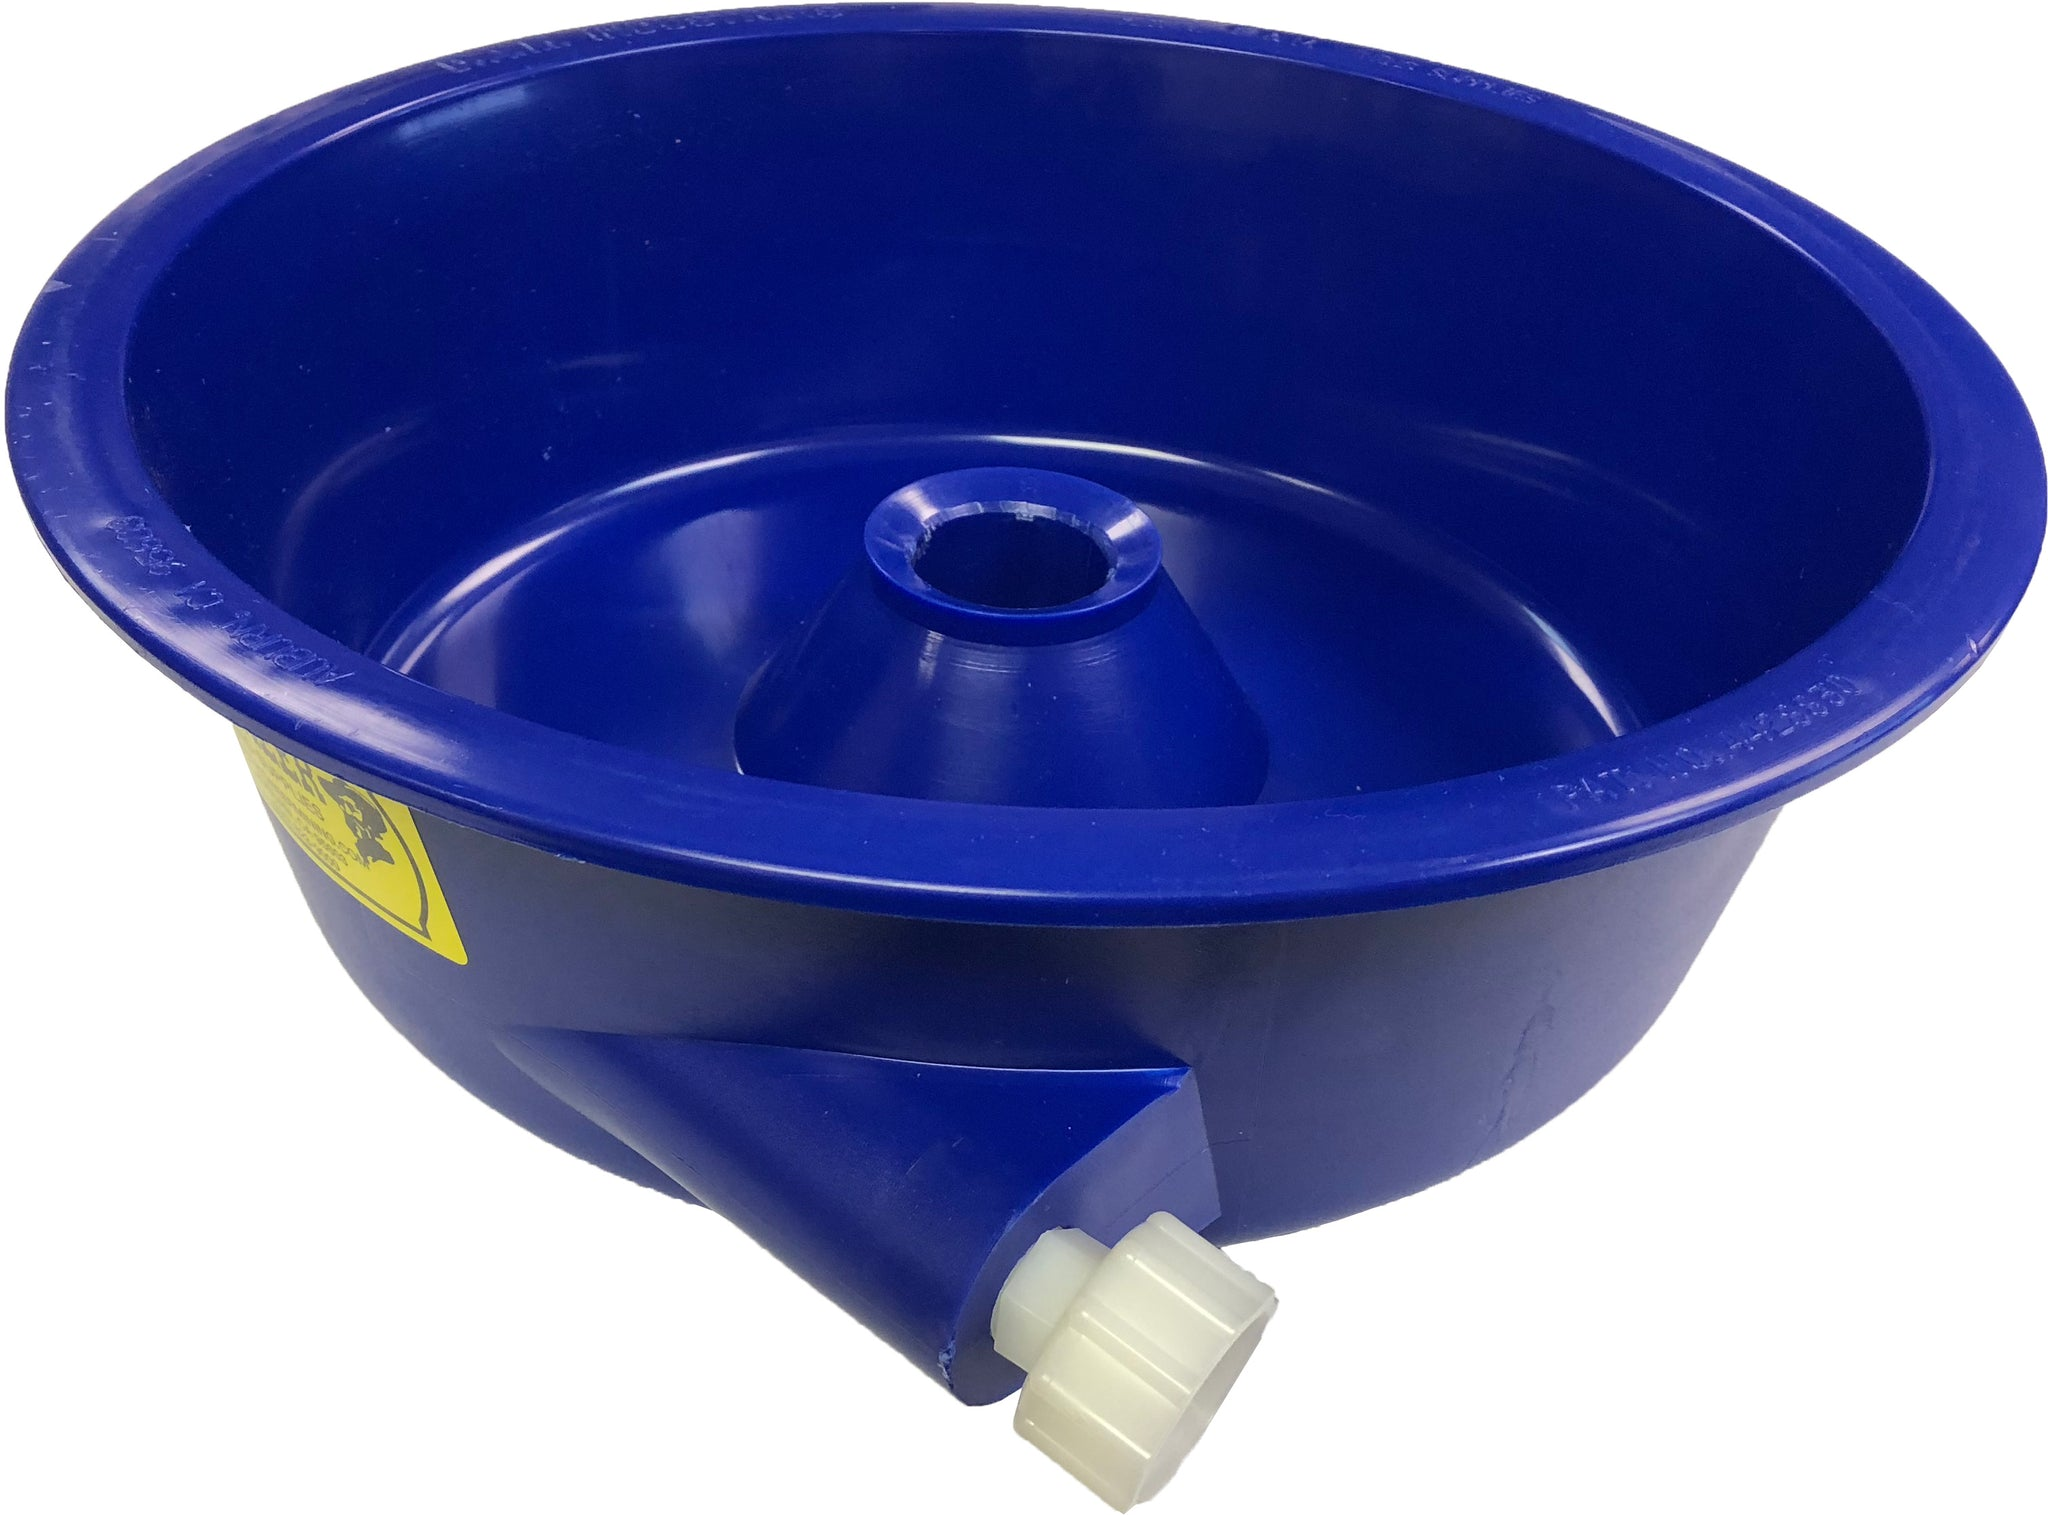 Blue Bowl Concentrator Kit W/ Leg Levelers